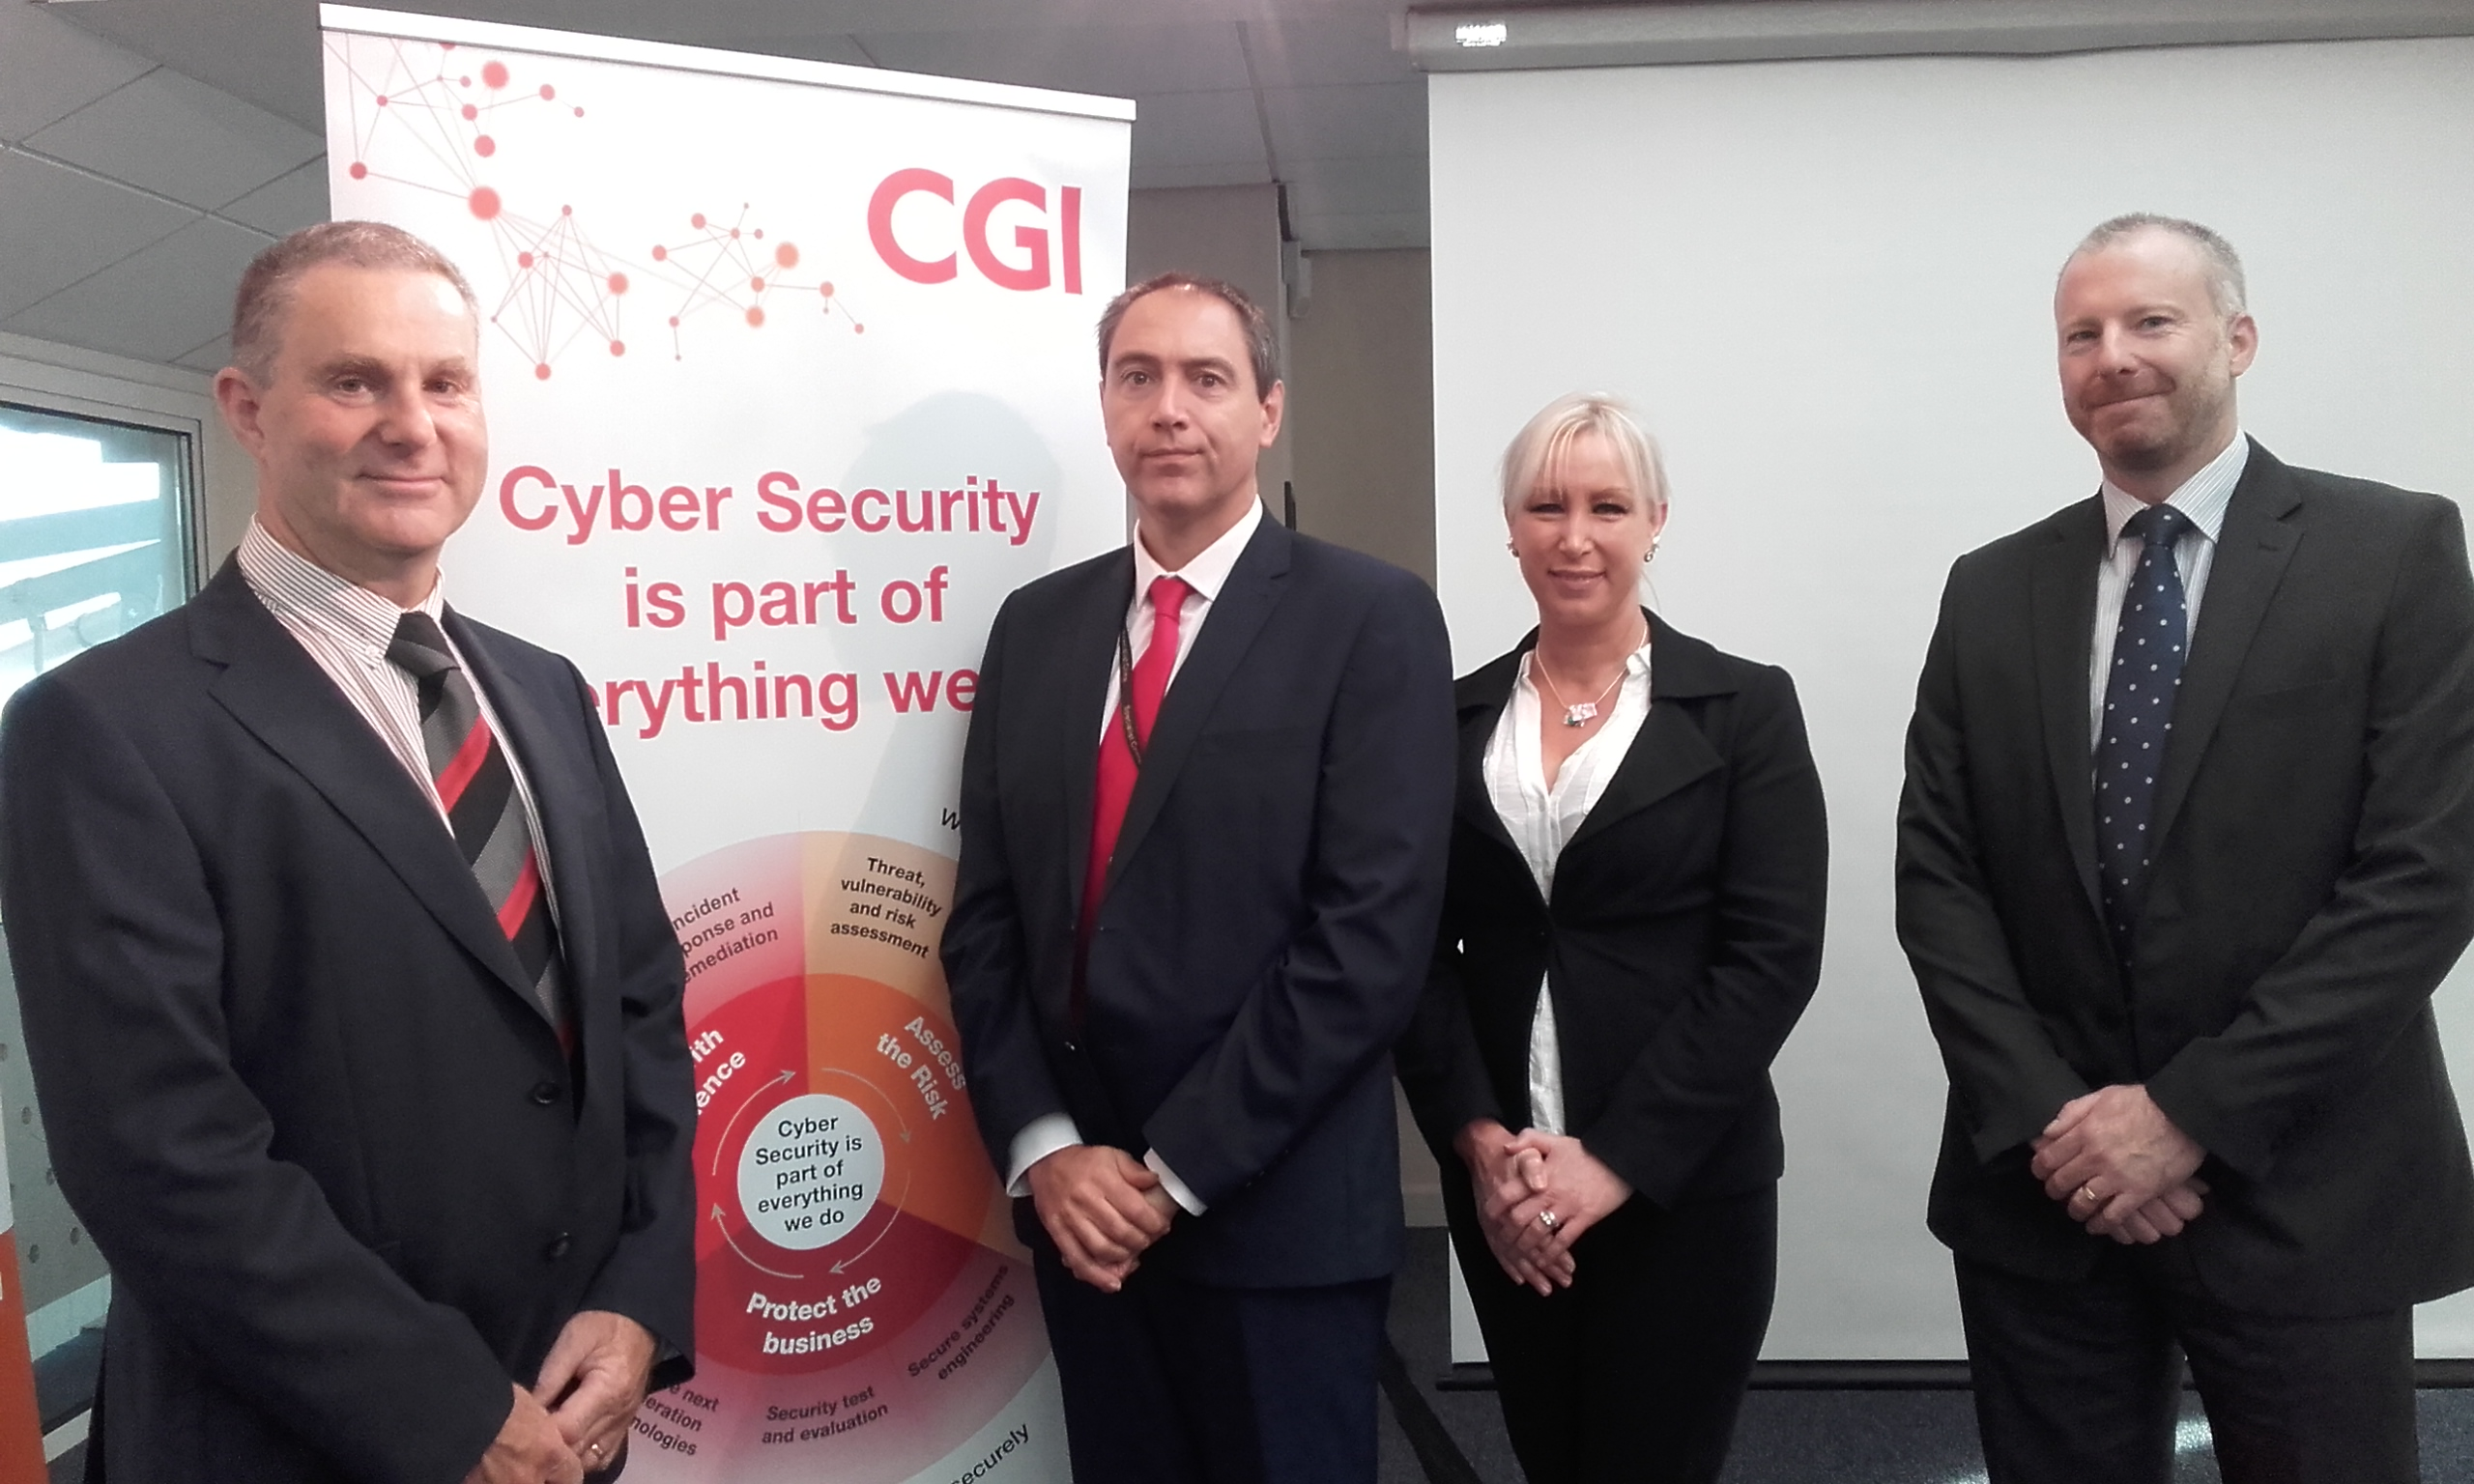 Internet related crime business event